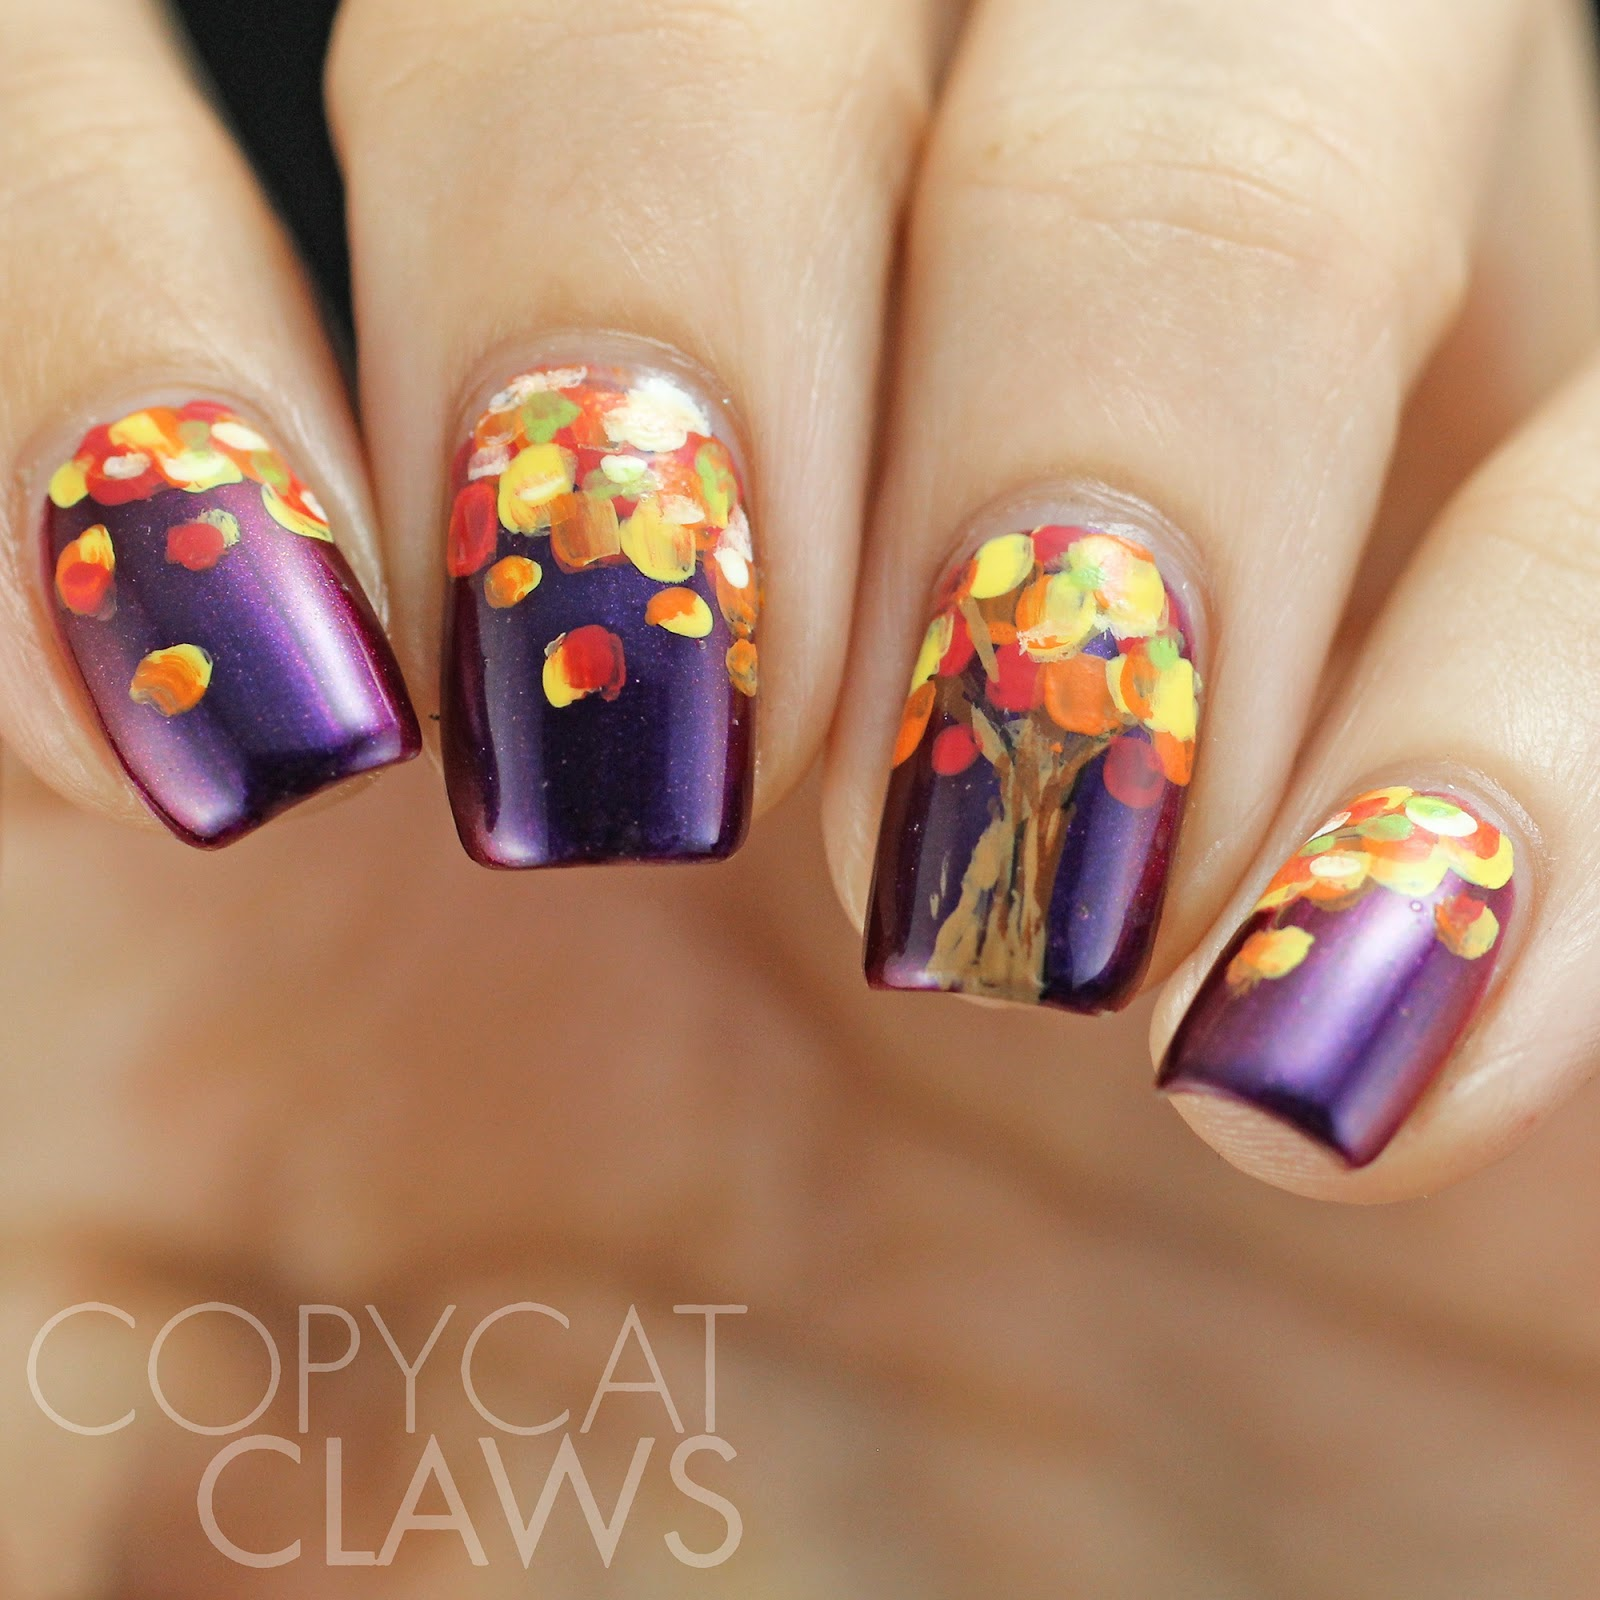 Copycat claws hpb presents fall tree nail art bloggers link up theme of fallautumn i tried to paint a little tree the way i would rather have our trees look instead of just boring ol yellow prinsesfo Image collections